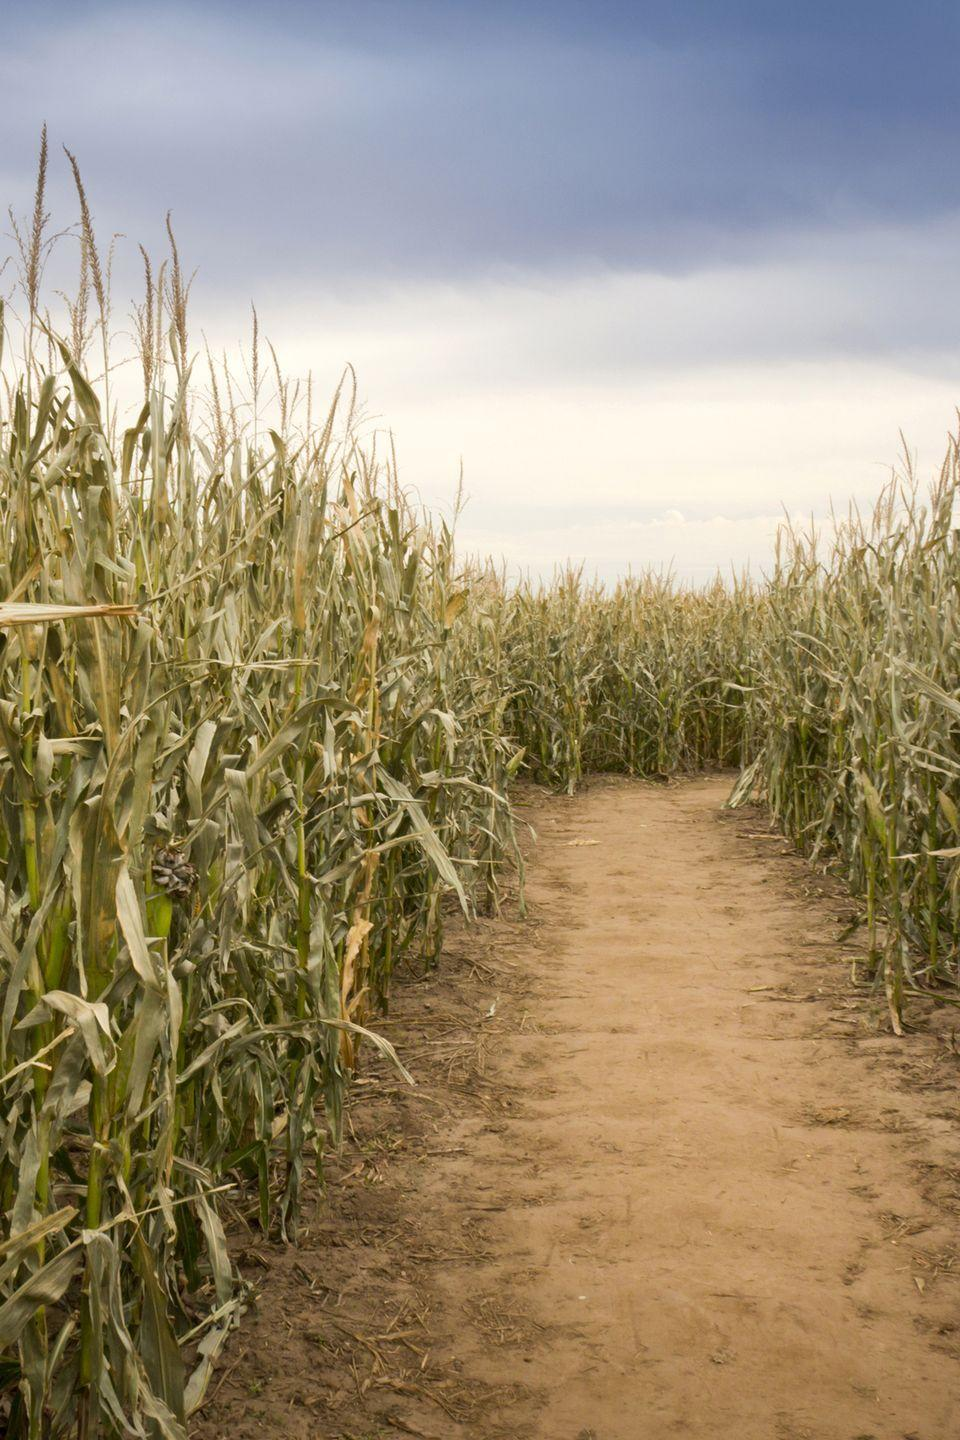 """<p>Get ready for some spooky fun at the <a href=""""https://www.newsalemcornmaze.com/"""" rel=""""nofollow noopener"""" target=""""_blank"""" data-ylk=""""slk:New Salem Corn Maze"""" class=""""link rapid-noclick-resp"""">New Salem Corn Maze</a> located in Dorr, Michigan. Teens and grown-ups can get their kicks by taking on their Haunted Corn Maze, Witches Wood adventure, or their Zombie Attack wagon ride. And for the family who wants a fun—not frightening—maze experience, stop by the <a href=""""https://go.redirectingat.com?id=74968X1596630&url=https%3A%2F%2Fwww.tripadvisor.com%2FTourism-g42256-Grand_Rapids_Kent_County_Michigan-Vacations.html&sref=https%3A%2F%2Fwww.countryliving.com%2Flife%2Ftravel%2Fg22717241%2Fcorn-maze-near-me%2F"""" rel=""""nofollow noopener"""" target=""""_blank"""" data-ylk=""""slk:Grand Rapids attraction"""" class=""""link rapid-noclick-resp"""">Grand Rapids attraction</a> and check out their kid-friendly Daytime Corn Maze. It all kicks off October 2.</p><p><a class=""""link rapid-noclick-resp"""" href=""""https://go.redirectingat.com?id=74968X1596630&url=https%3A%2F%2Fwww.tripadvisor.com%2FAttractions-g42144-Activities-Dorr_Allegan_County_Michigan.html&sref=https%3A%2F%2Fwww.countryliving.com%2Flife%2Ftravel%2Fg22717241%2Fcorn-maze-near-me%2F"""" rel=""""nofollow noopener"""" target=""""_blank"""" data-ylk=""""slk:PLAN YOUR TRIP"""">PLAN YOUR TRIP</a></p>"""